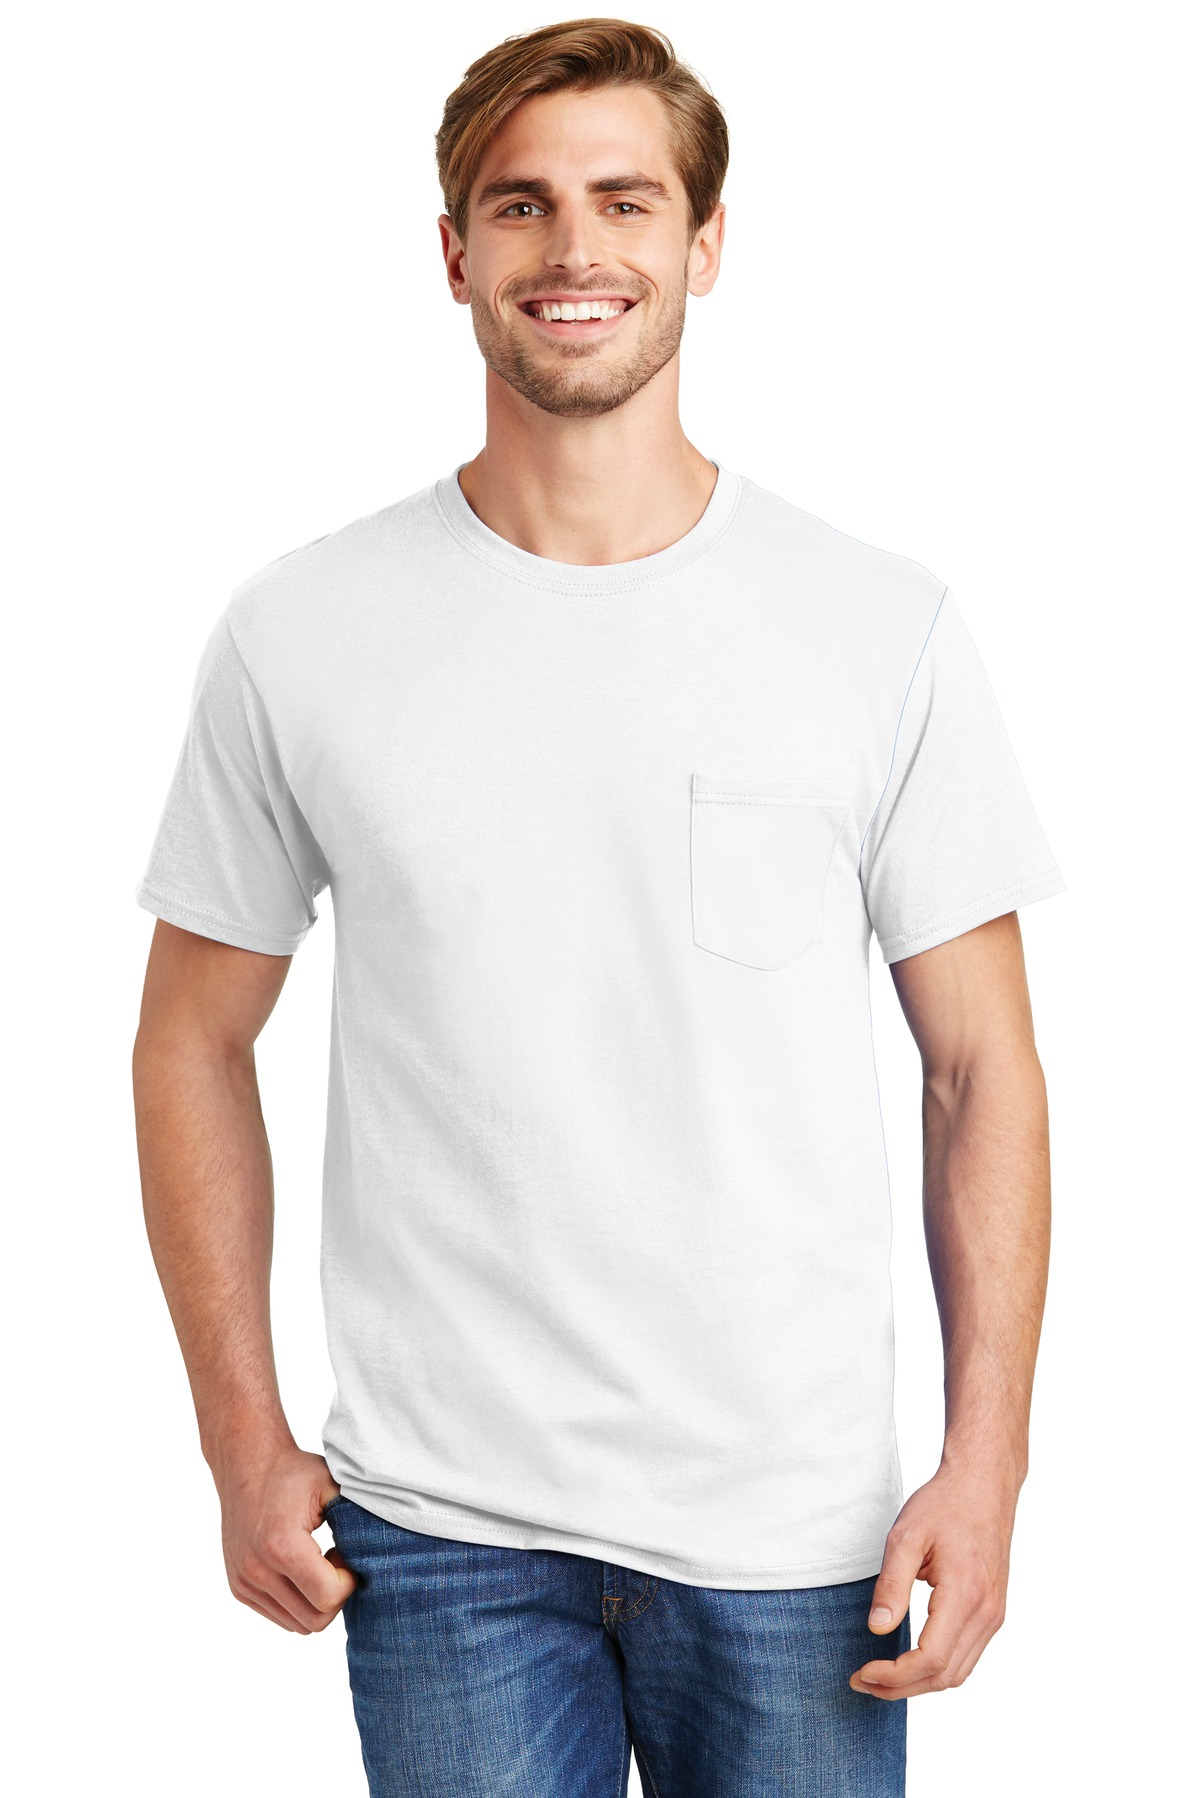 Hanes ®  - Tagless ®  100%  Cotton T-Shirt with Pocket.  5590 - White